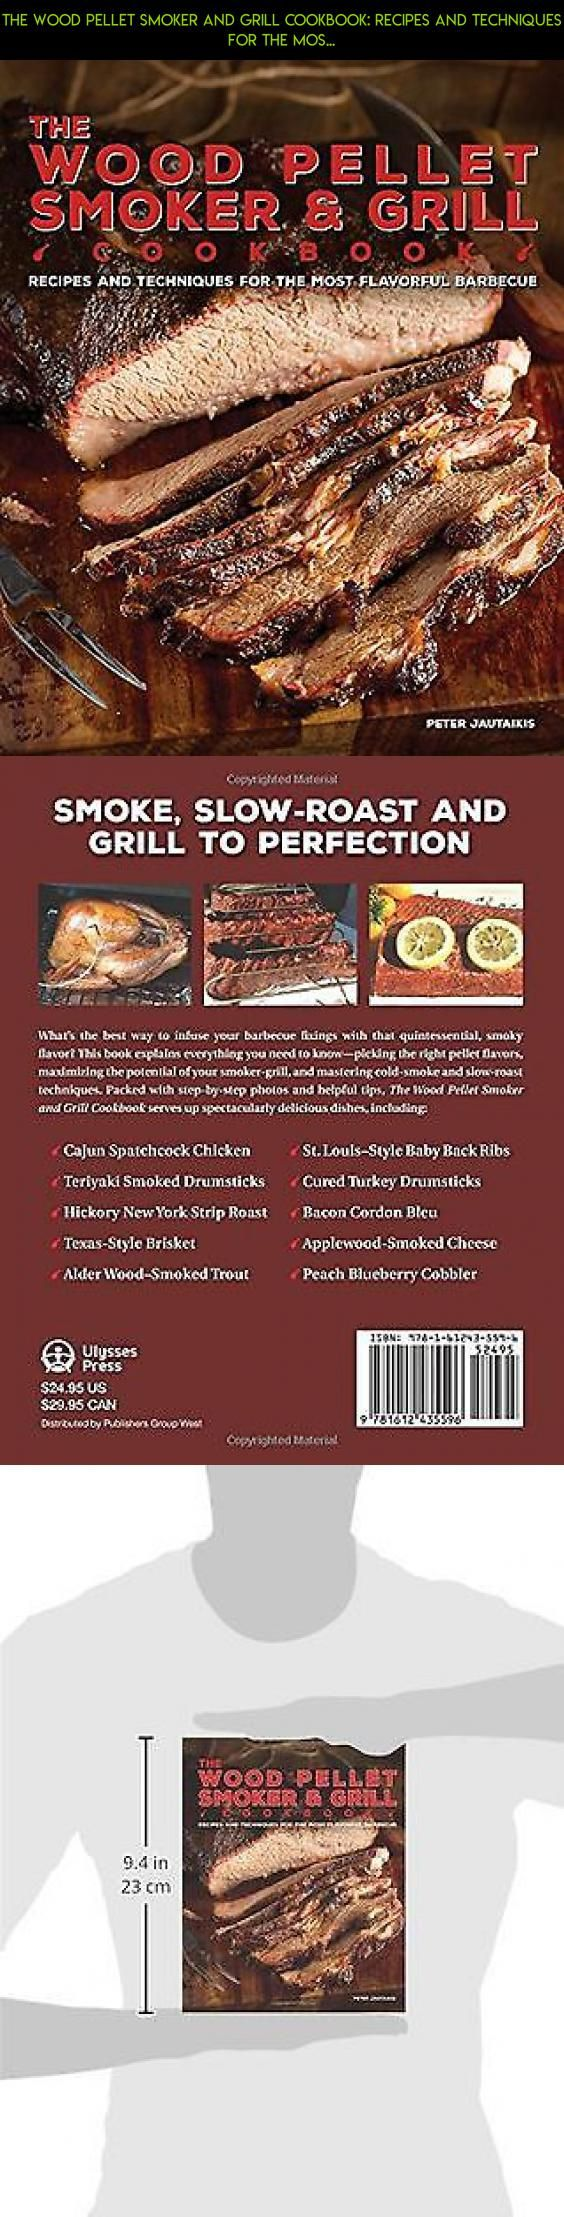 The Wood Pellet Smoker and Grill Cookbook: Recipes and Techniques for the Mos... #technology #camera #wood #fpv #shopping #and #drone #tech #parts #plans #products #gadgets #grills #racing #smokers #pellet #kit